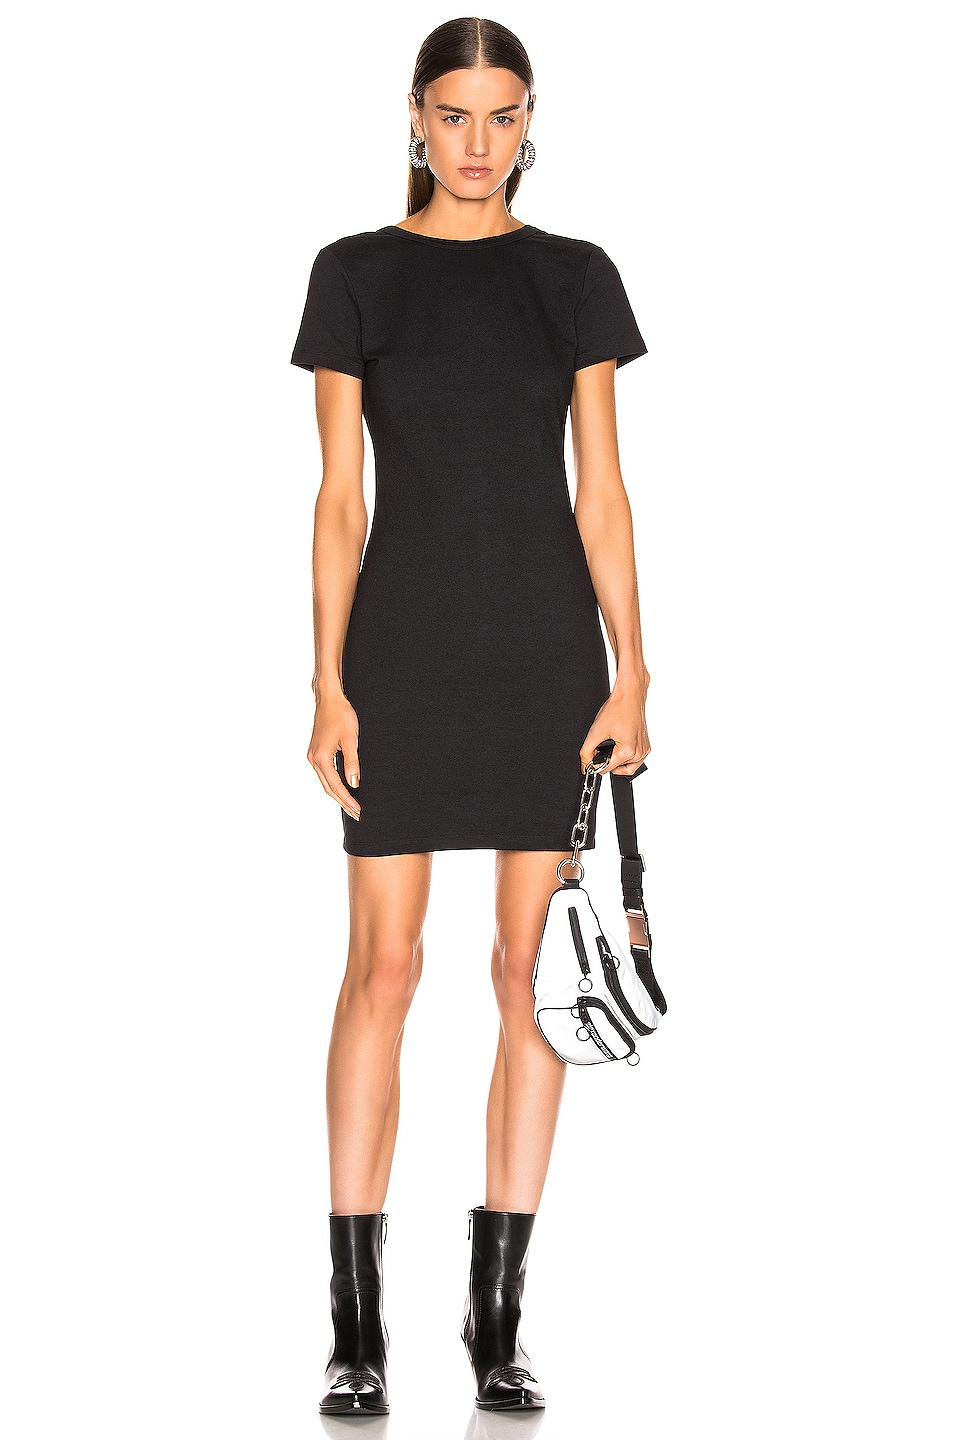 Image 2 of T by Alexander Wang Snaps Dress in Black